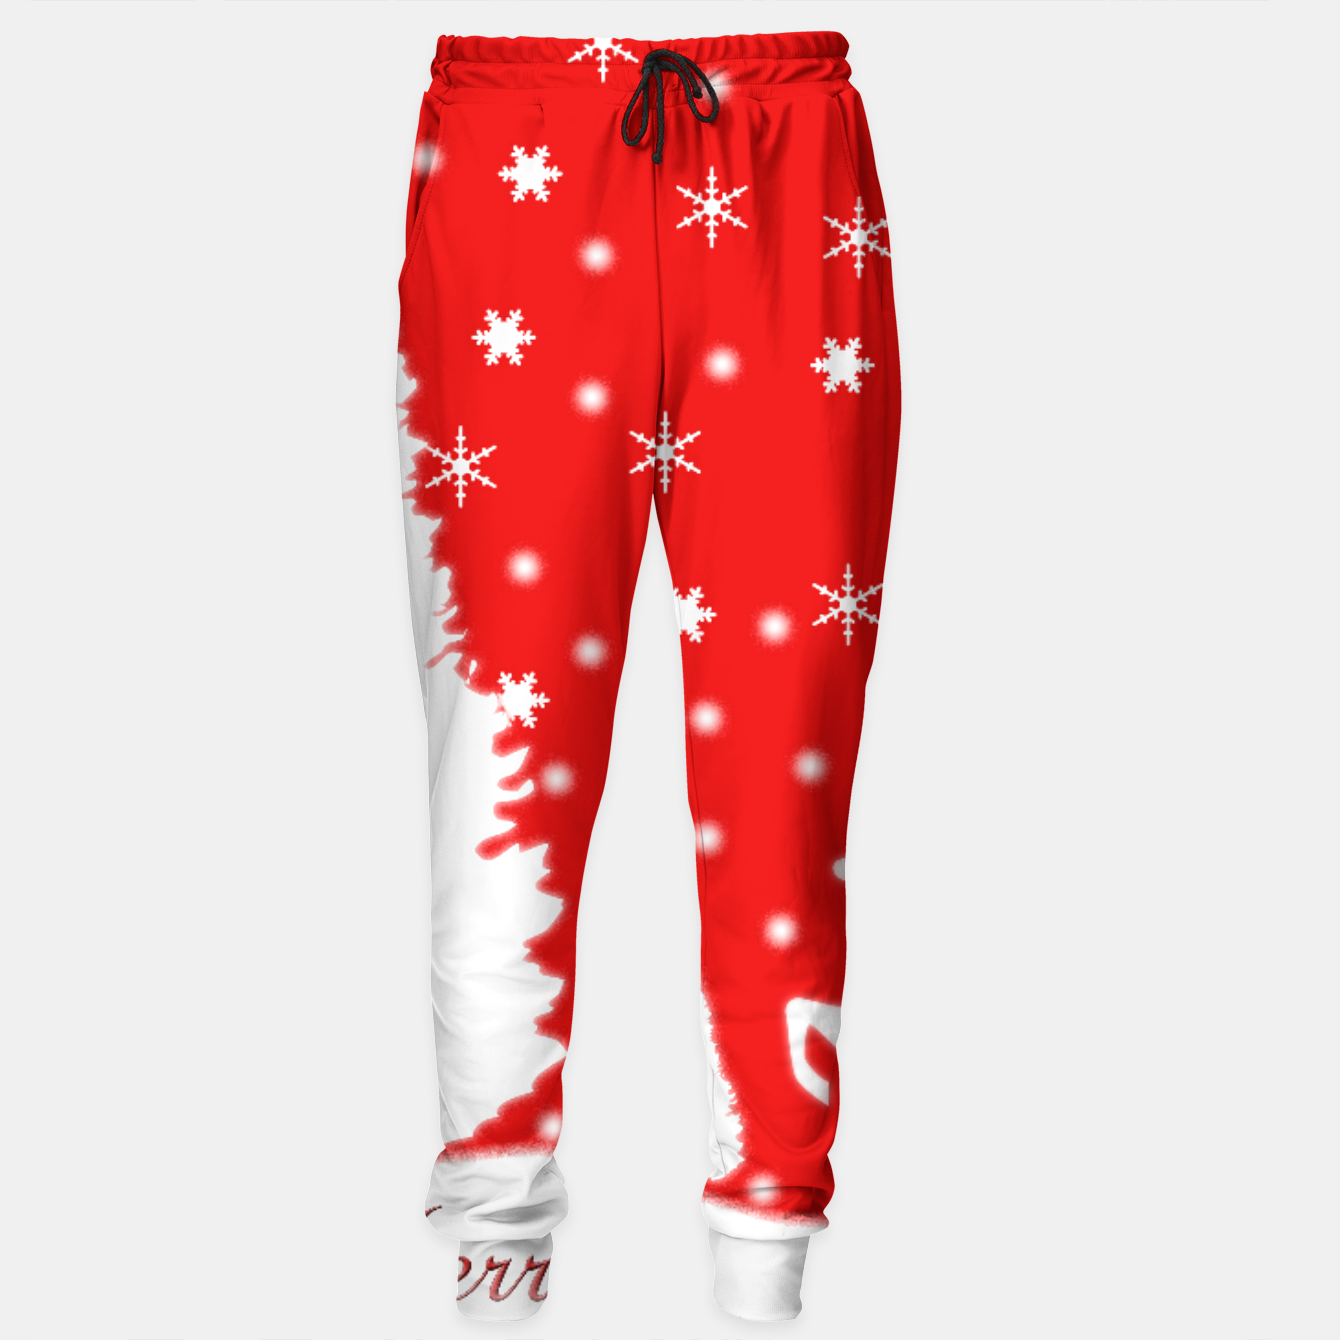 309f076189349 Merry Christmas Winter Snowflakes Sweatpants Zm, Live Heroes